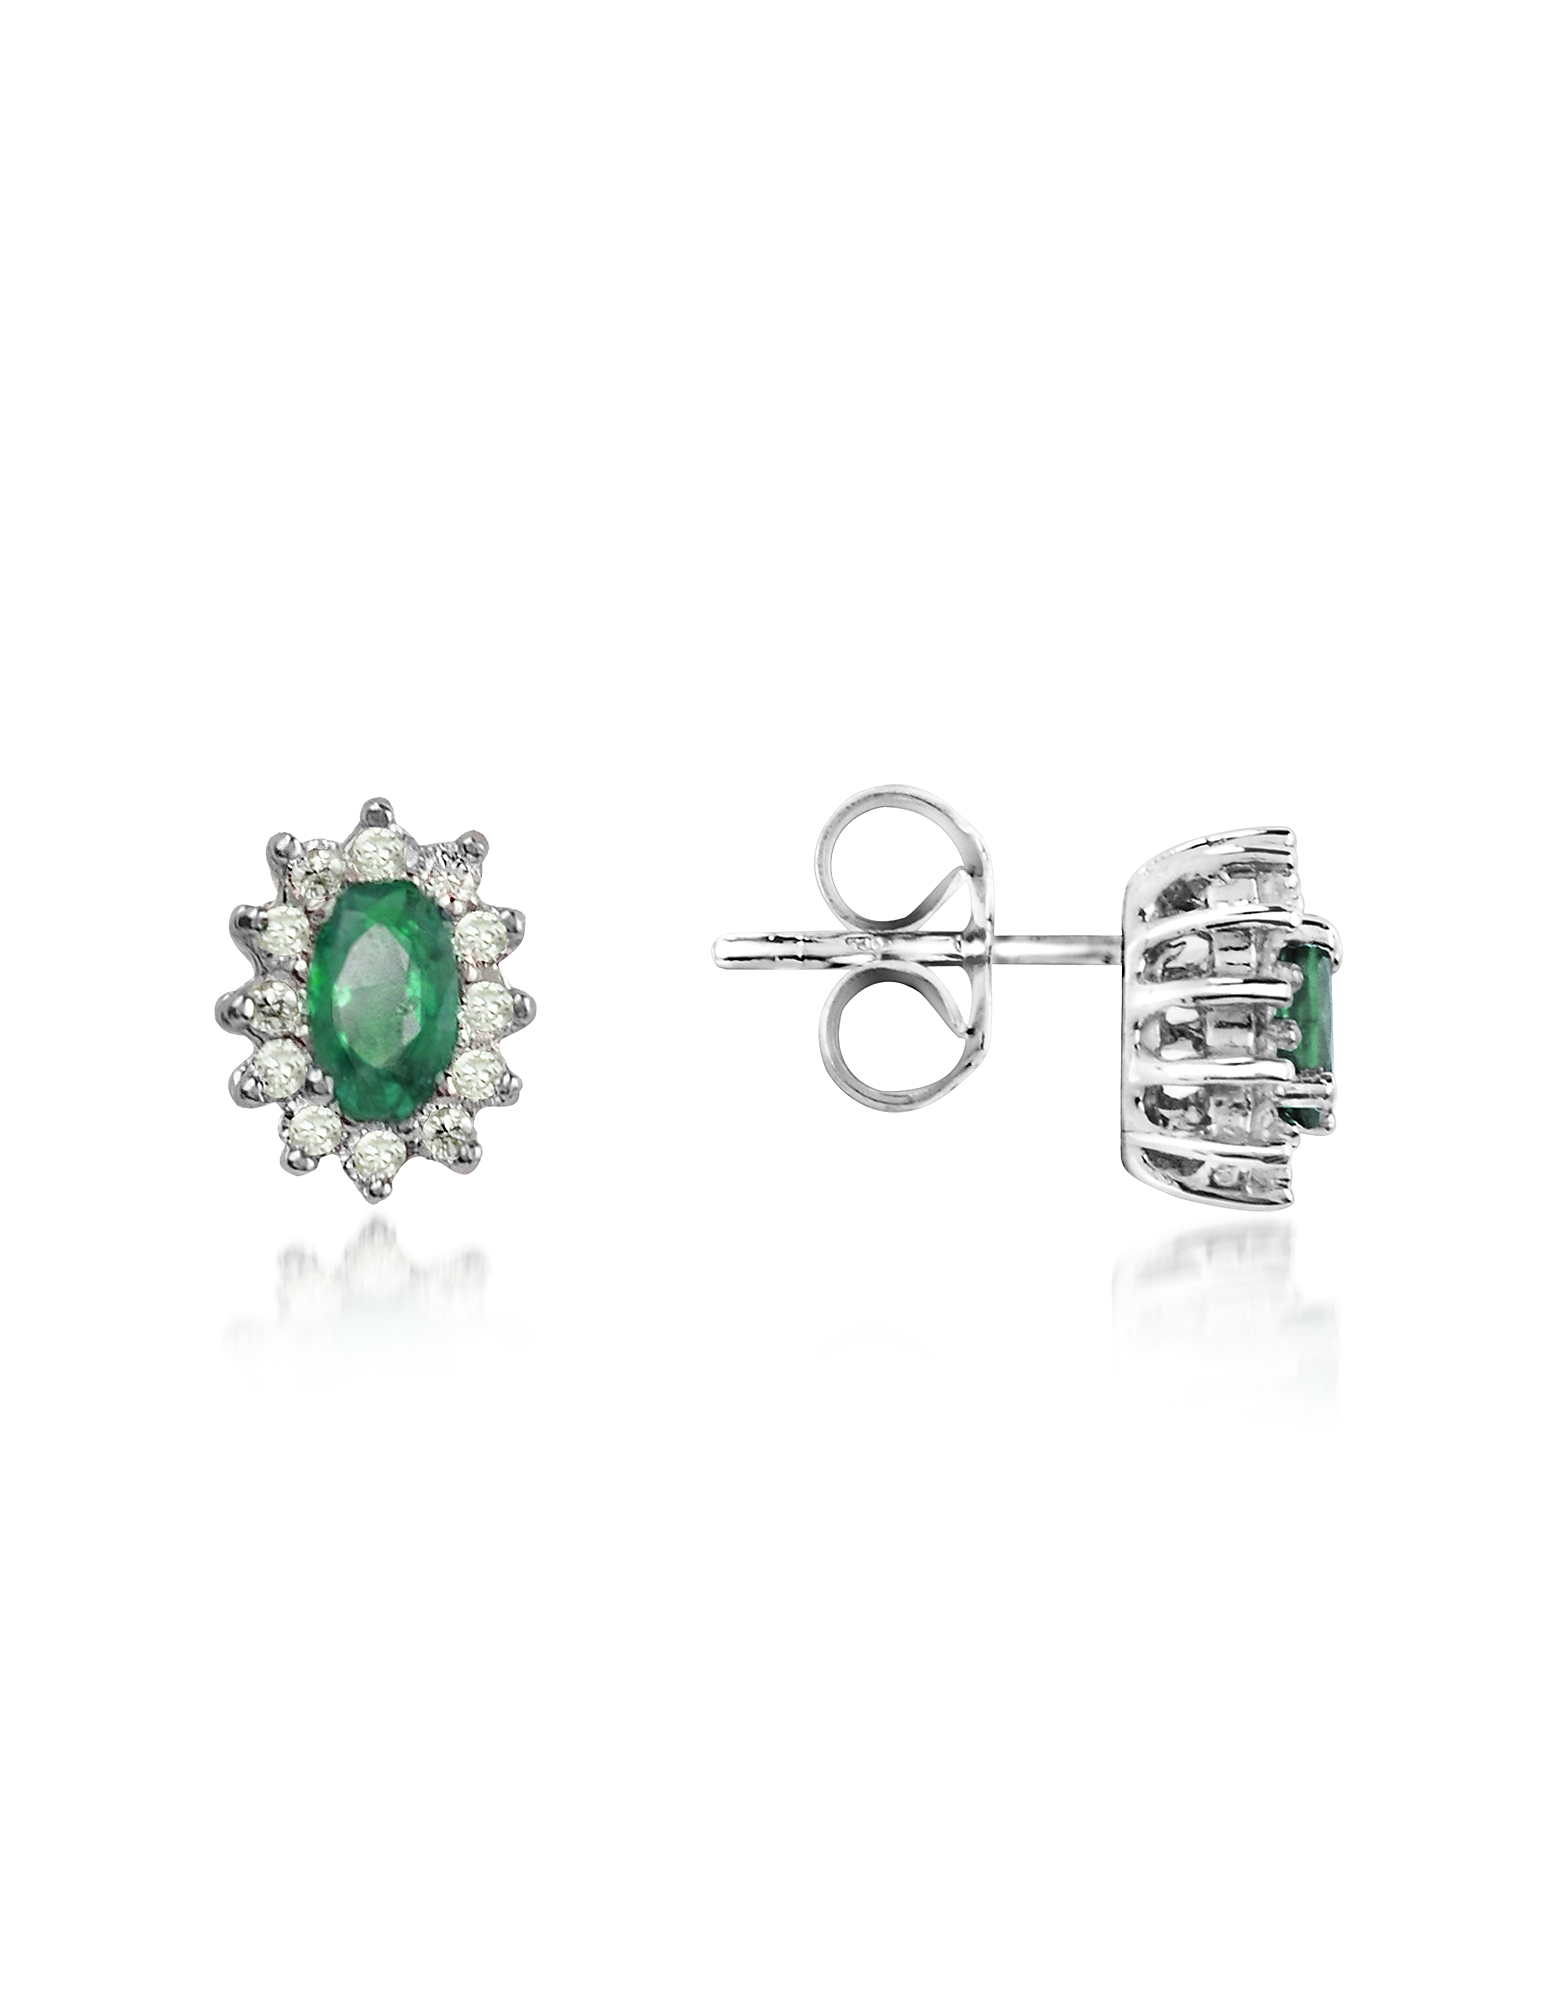 Incanto Royale Earrings, Emerald and Diamond 18K Gold Earrings